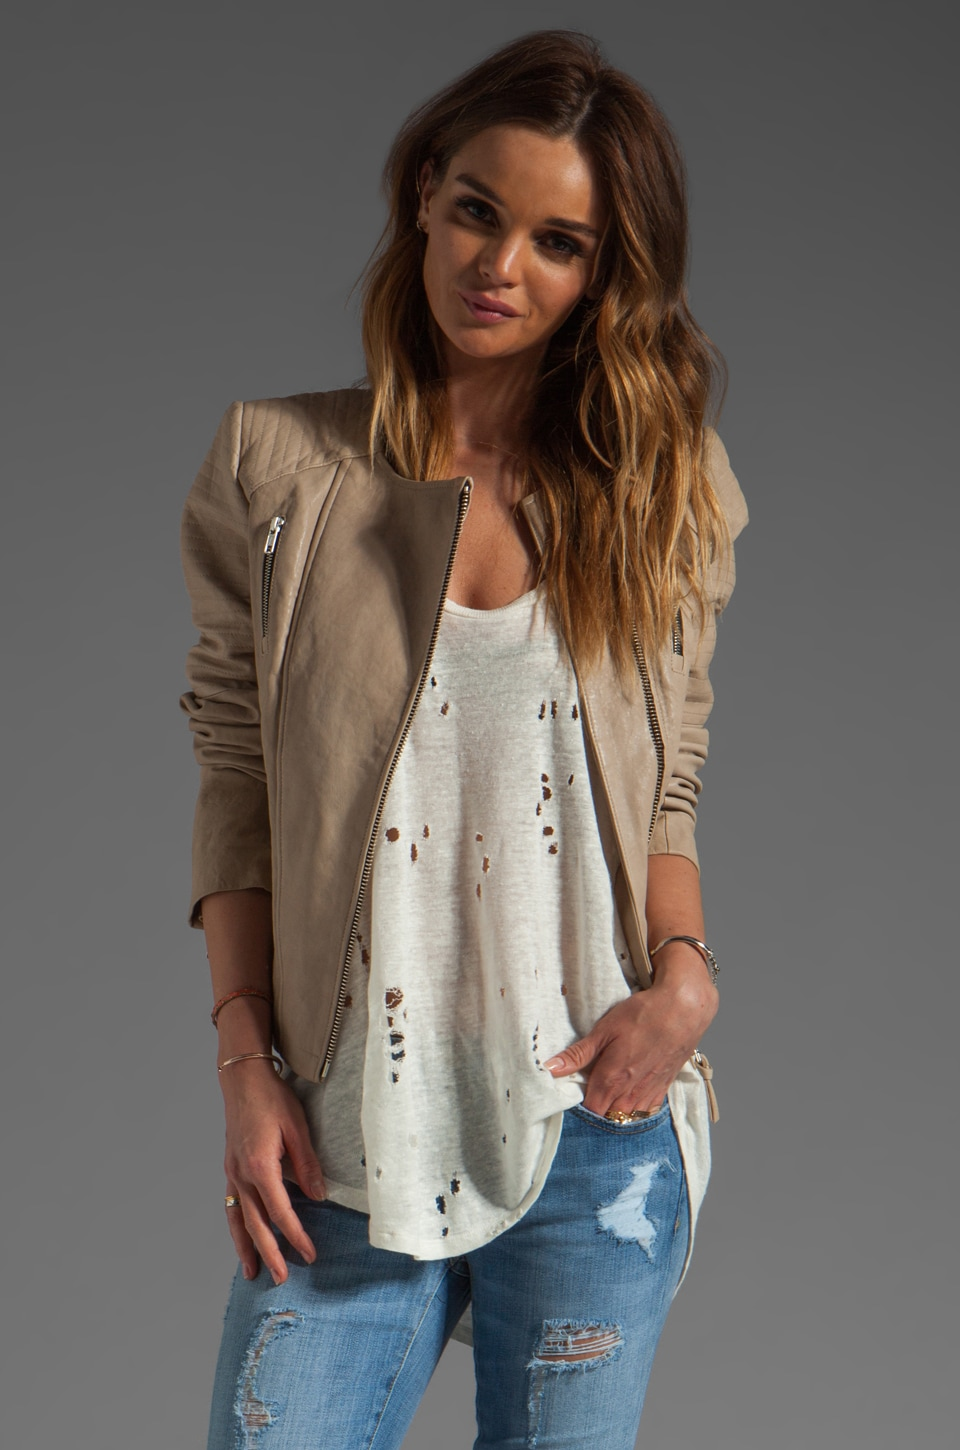 Mackage Brooklyn Distressed Leather Jacket in Sand